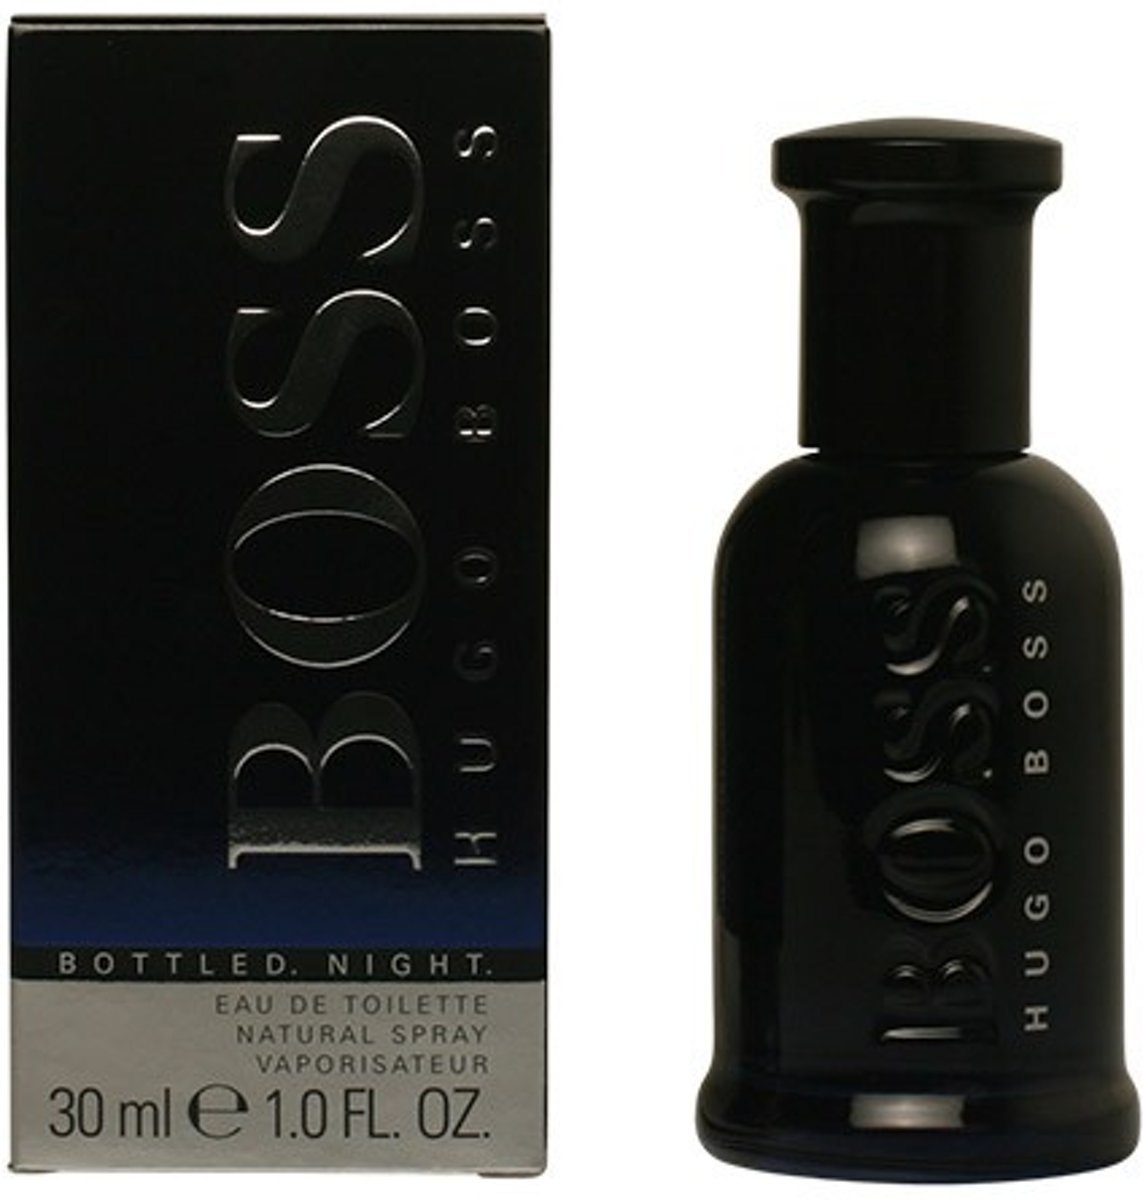 MULTI BUNDEL 3 stuks BOSS BOTTLED NIGHT Eau de Toilette Spray 30 ml